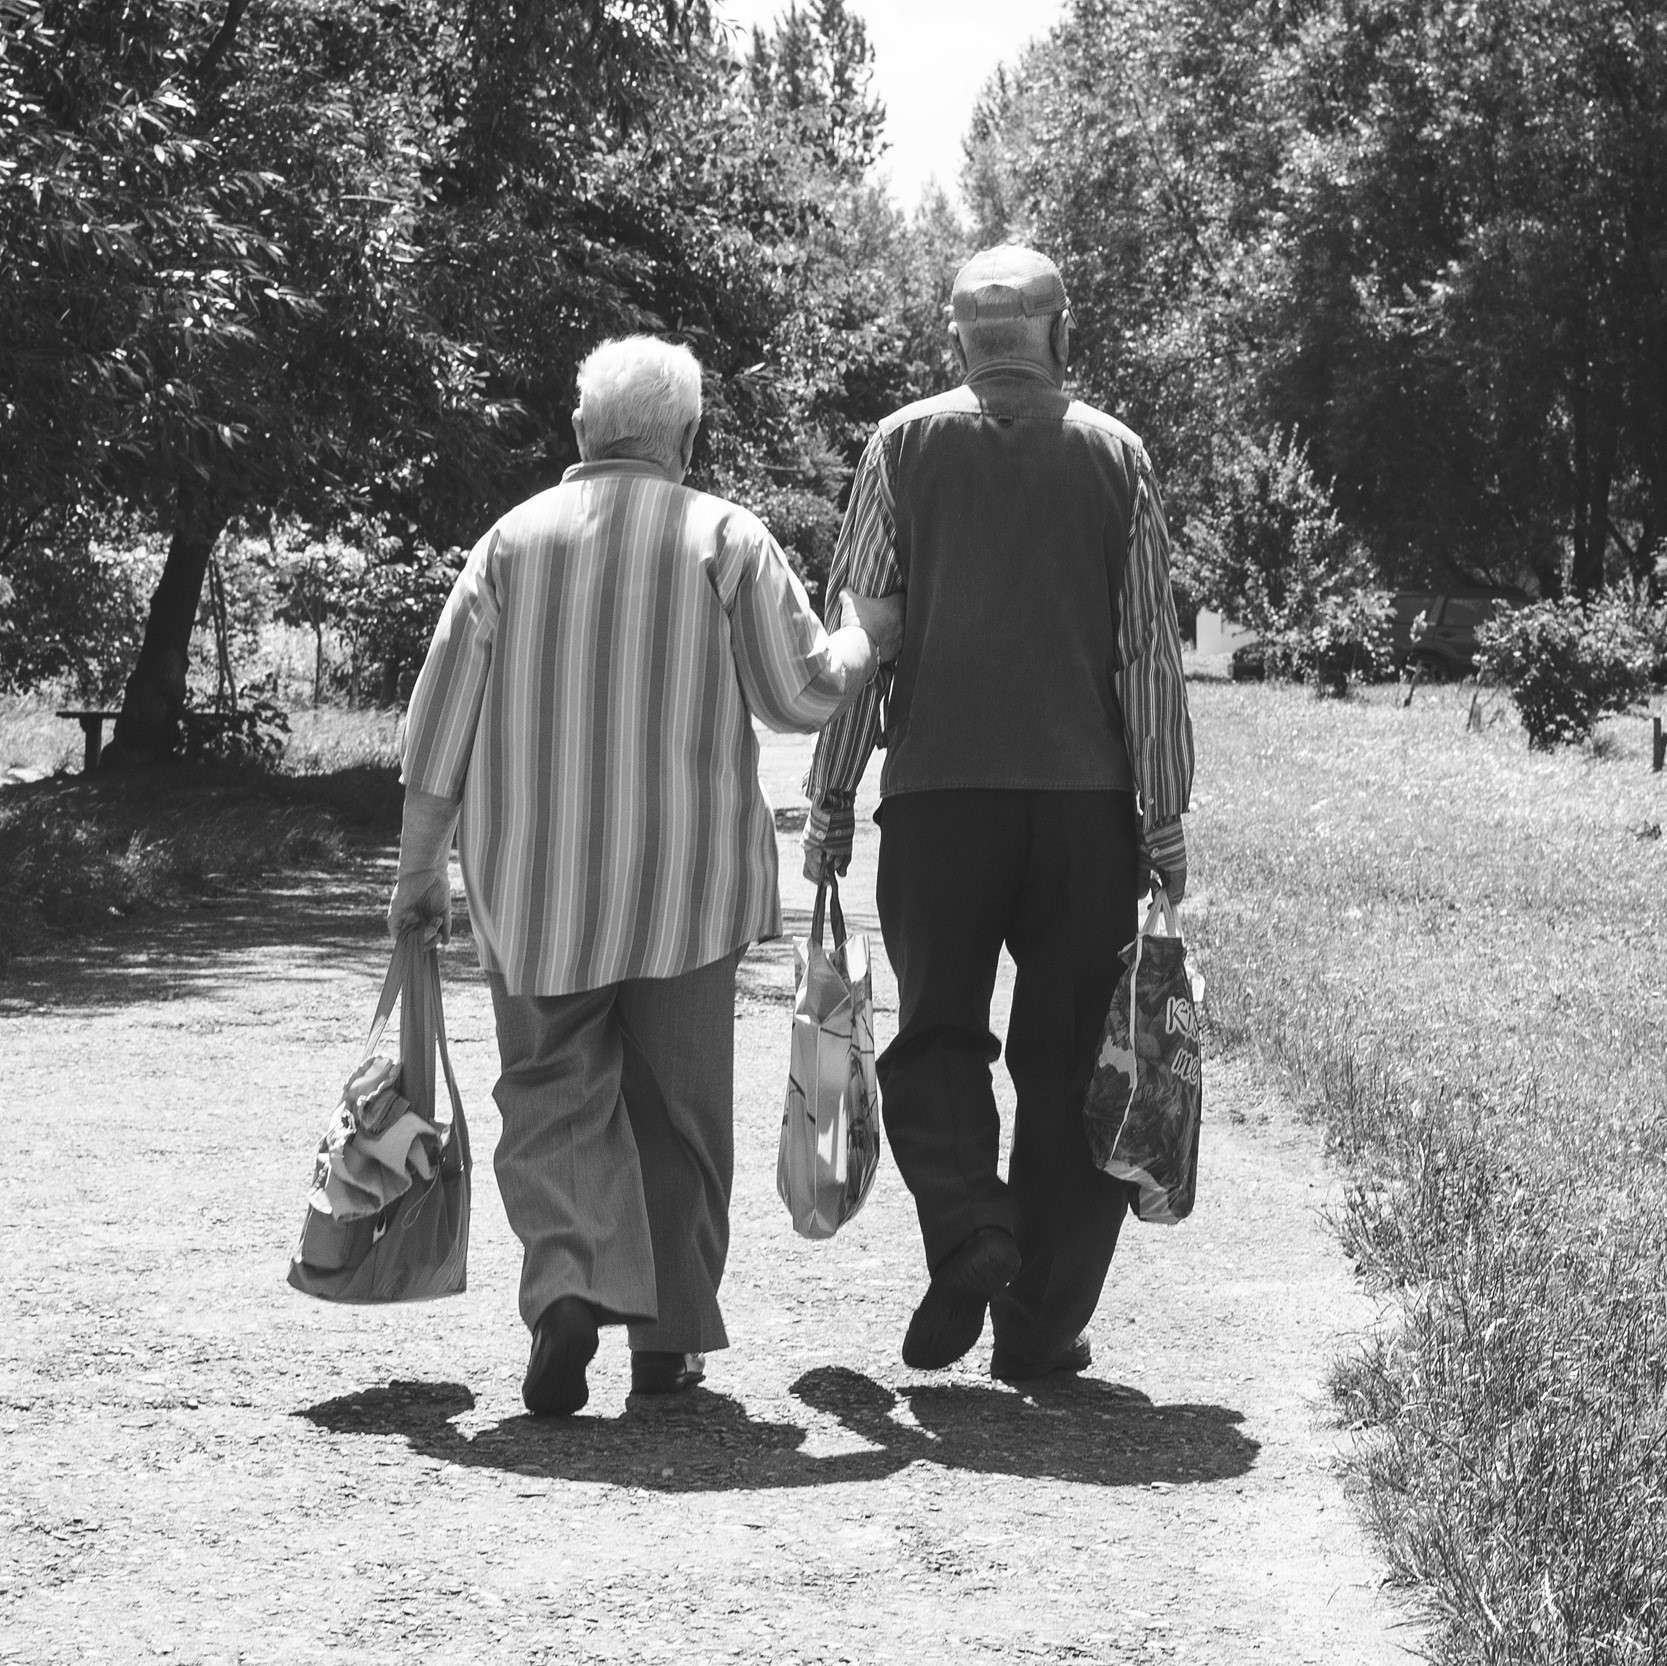 An elderly pair walking and lifting bags